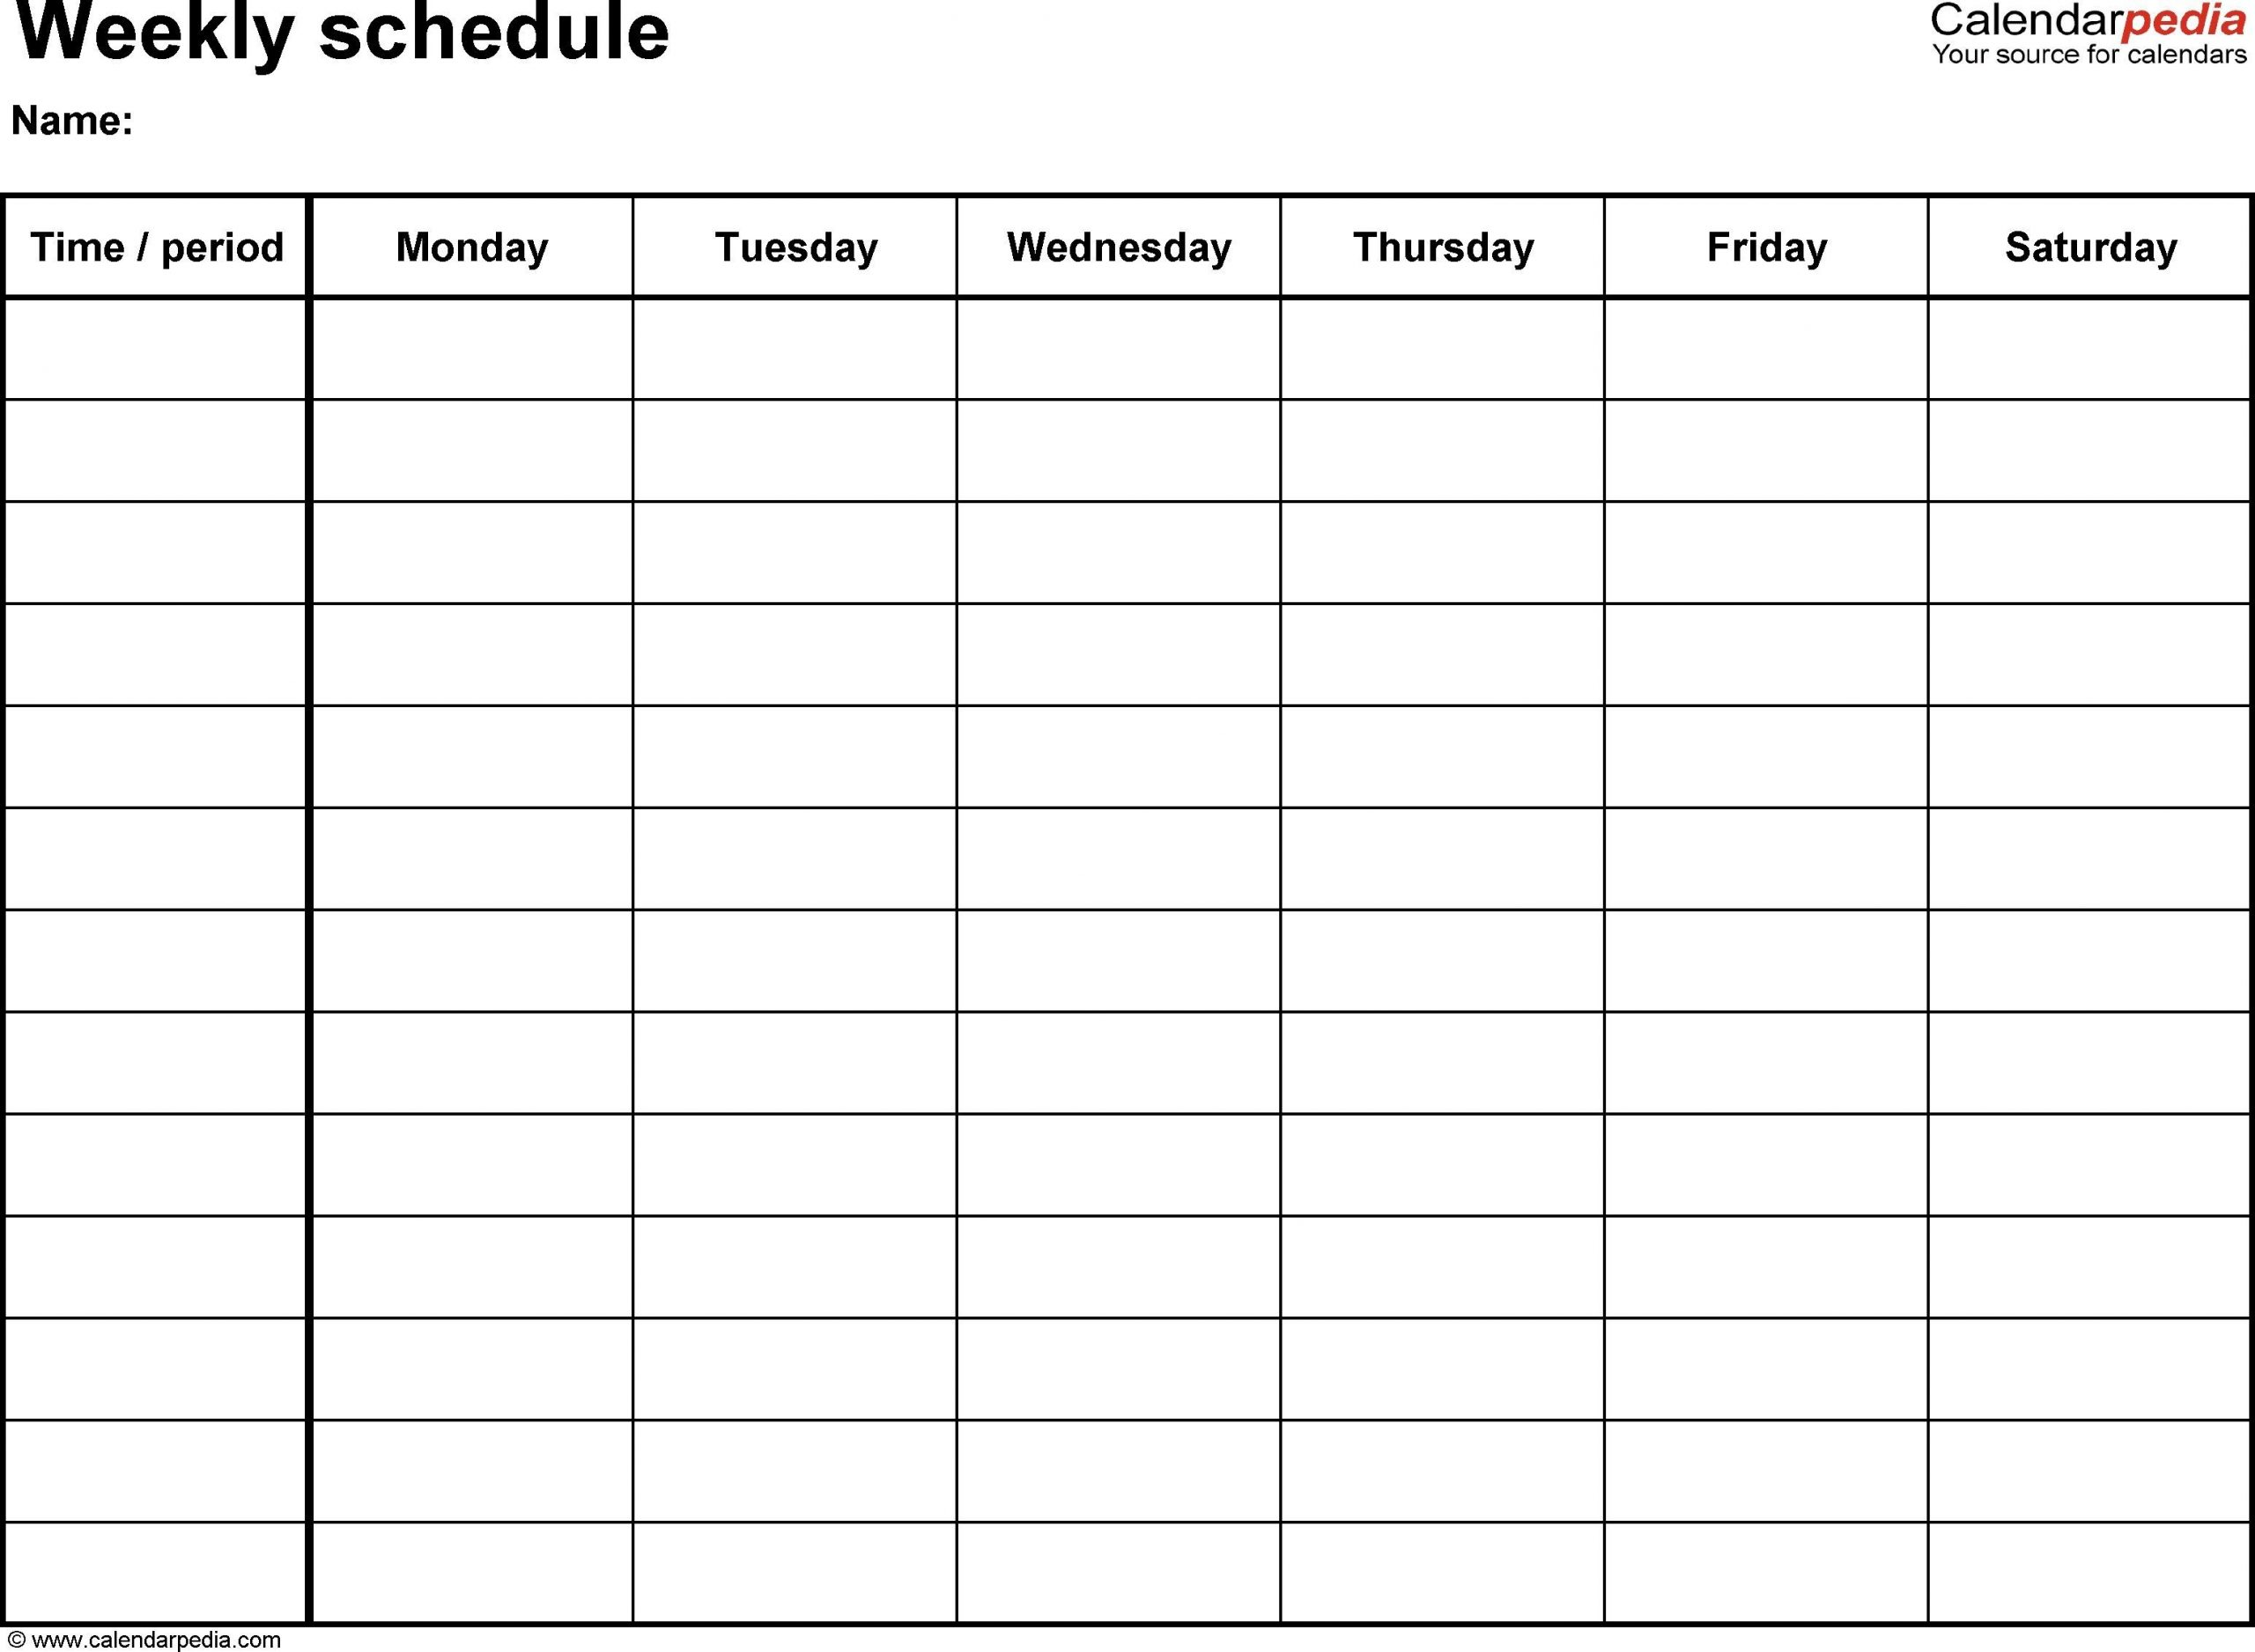 6 Week Calendar Template Word | Weekly Calendar Template